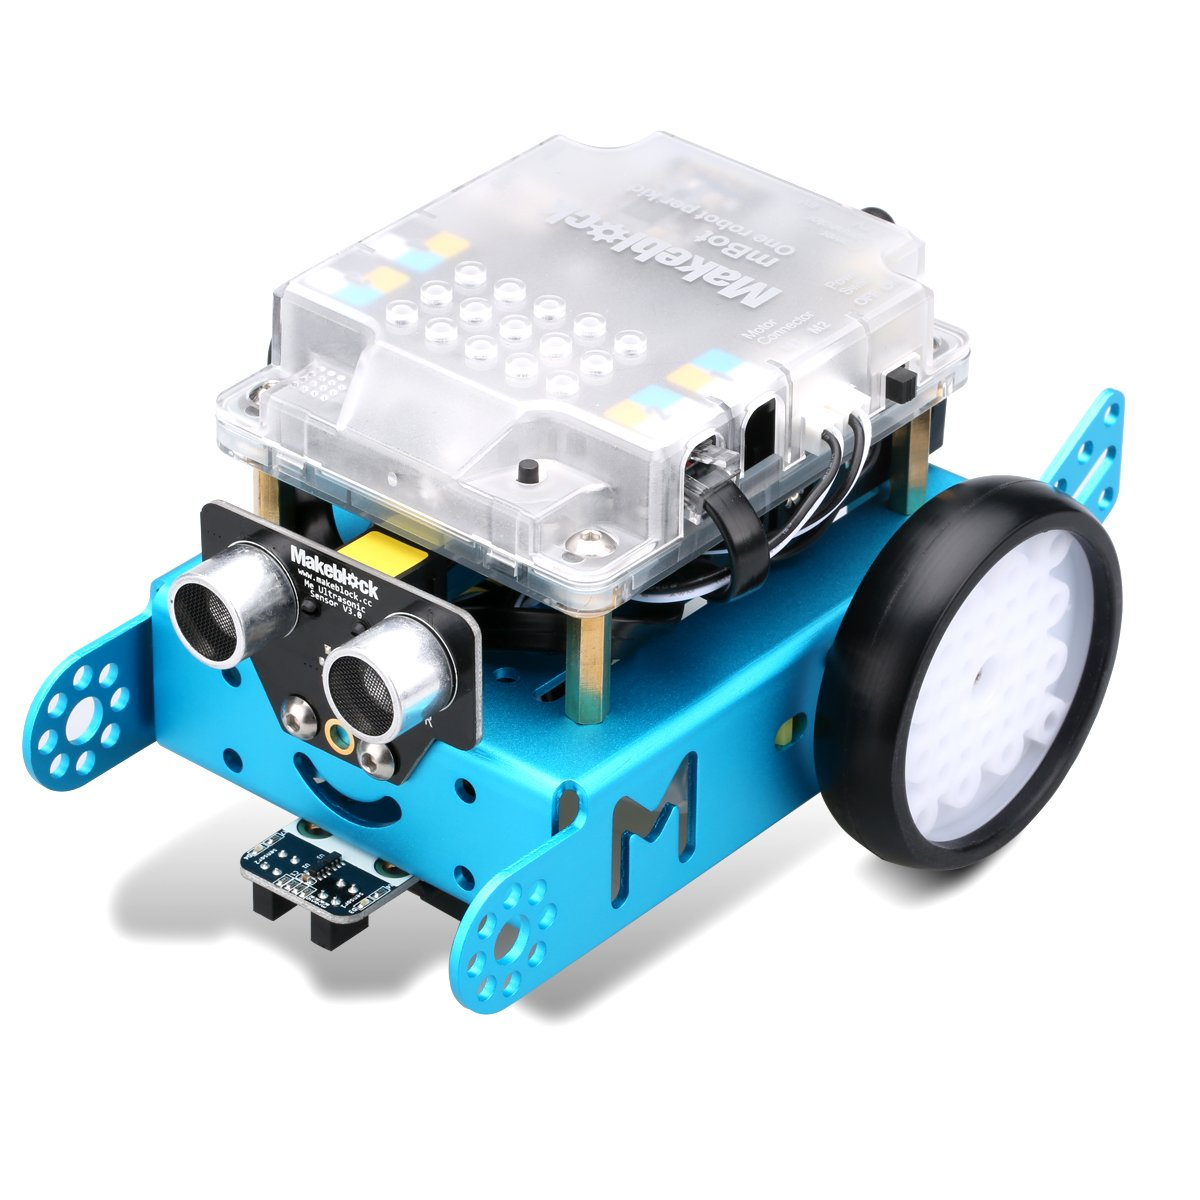 Voiture en kit à monter makeblock mbot